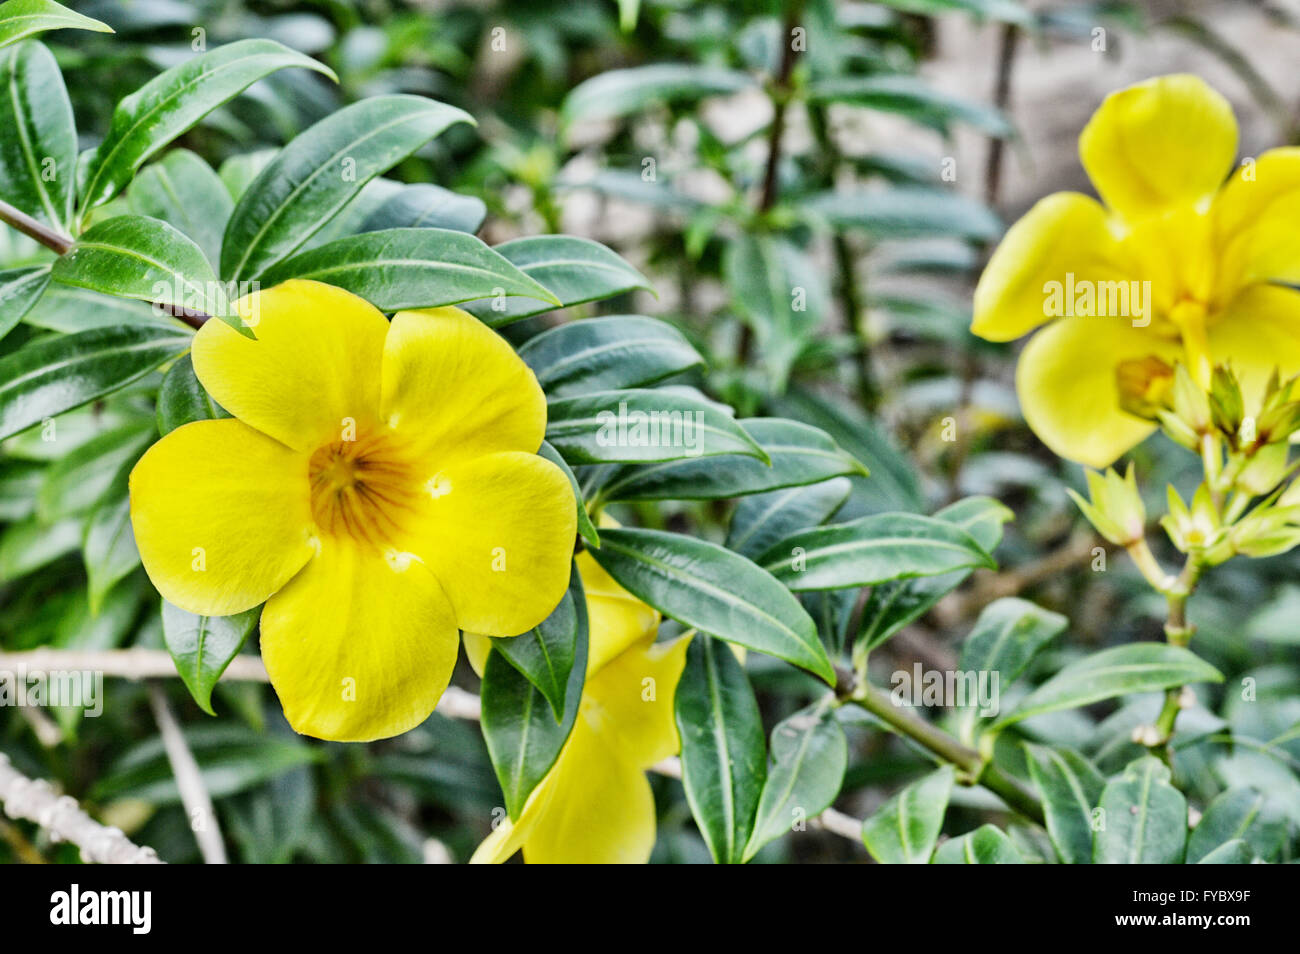 Yellow trumpet flower tree in nature stock photo 102909675 alamy yellow trumpet flower tree in nature mightylinksfo